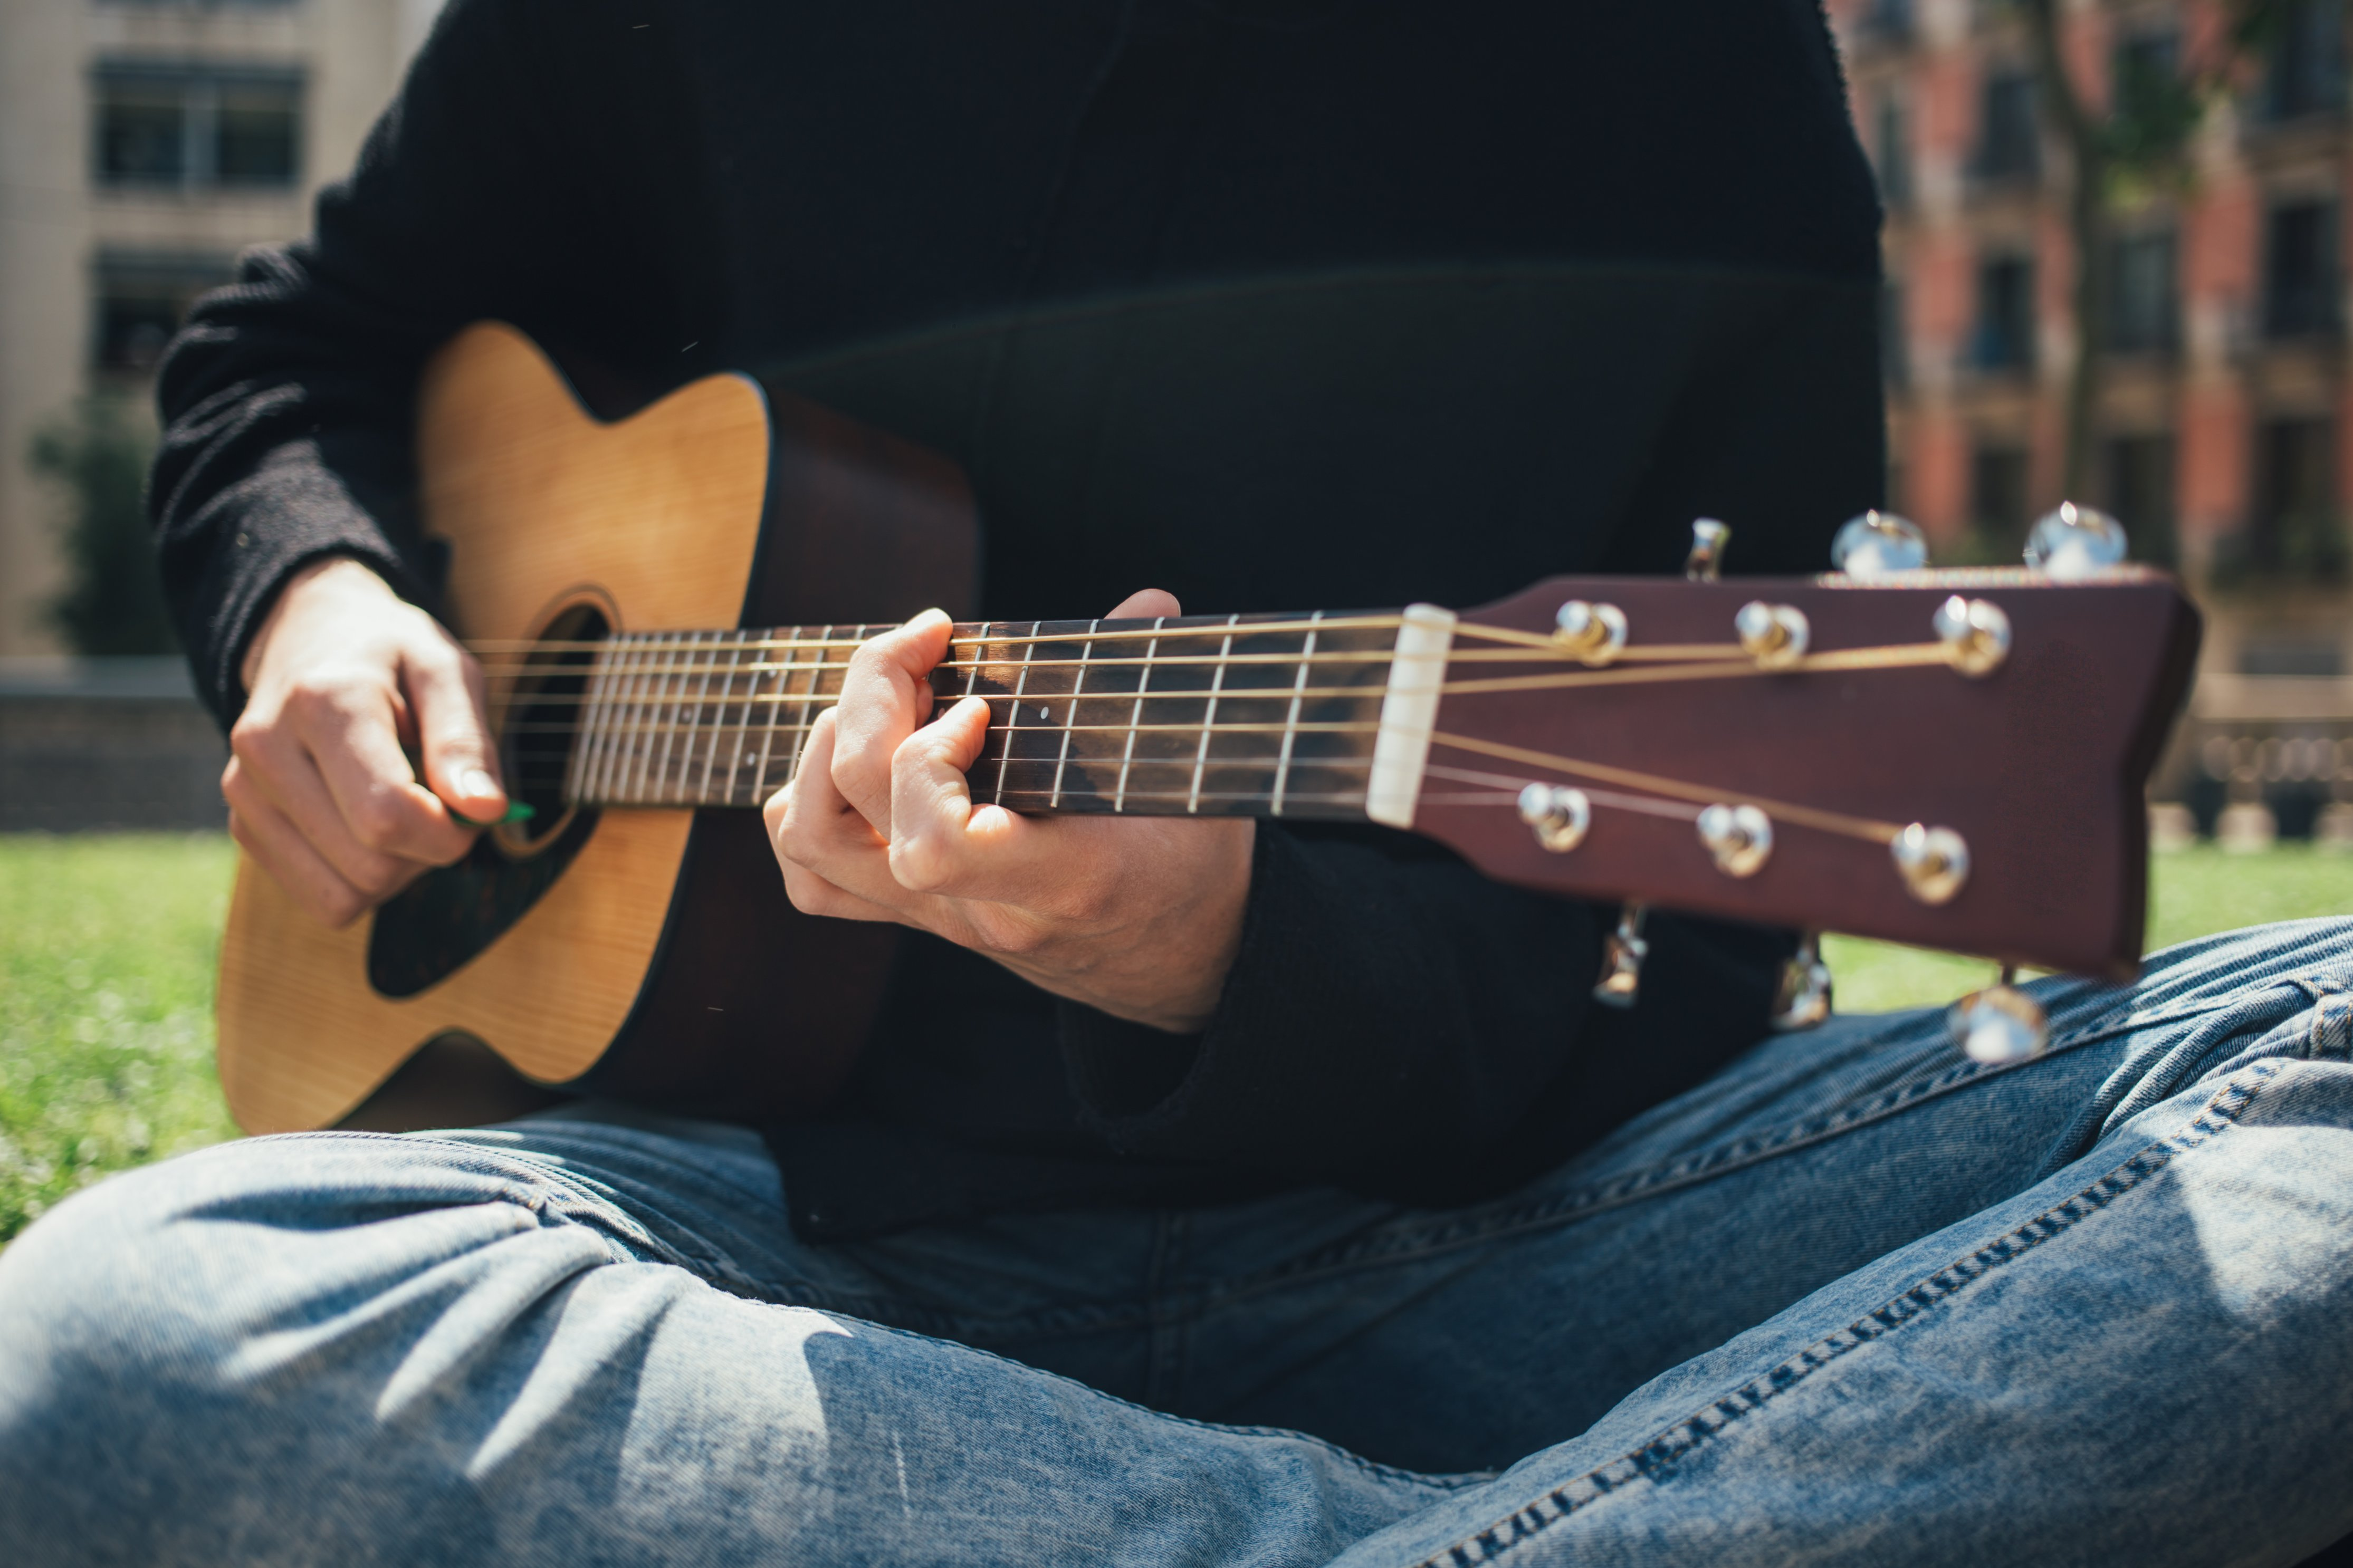 playing-guitar-in-the-park_4460x4460